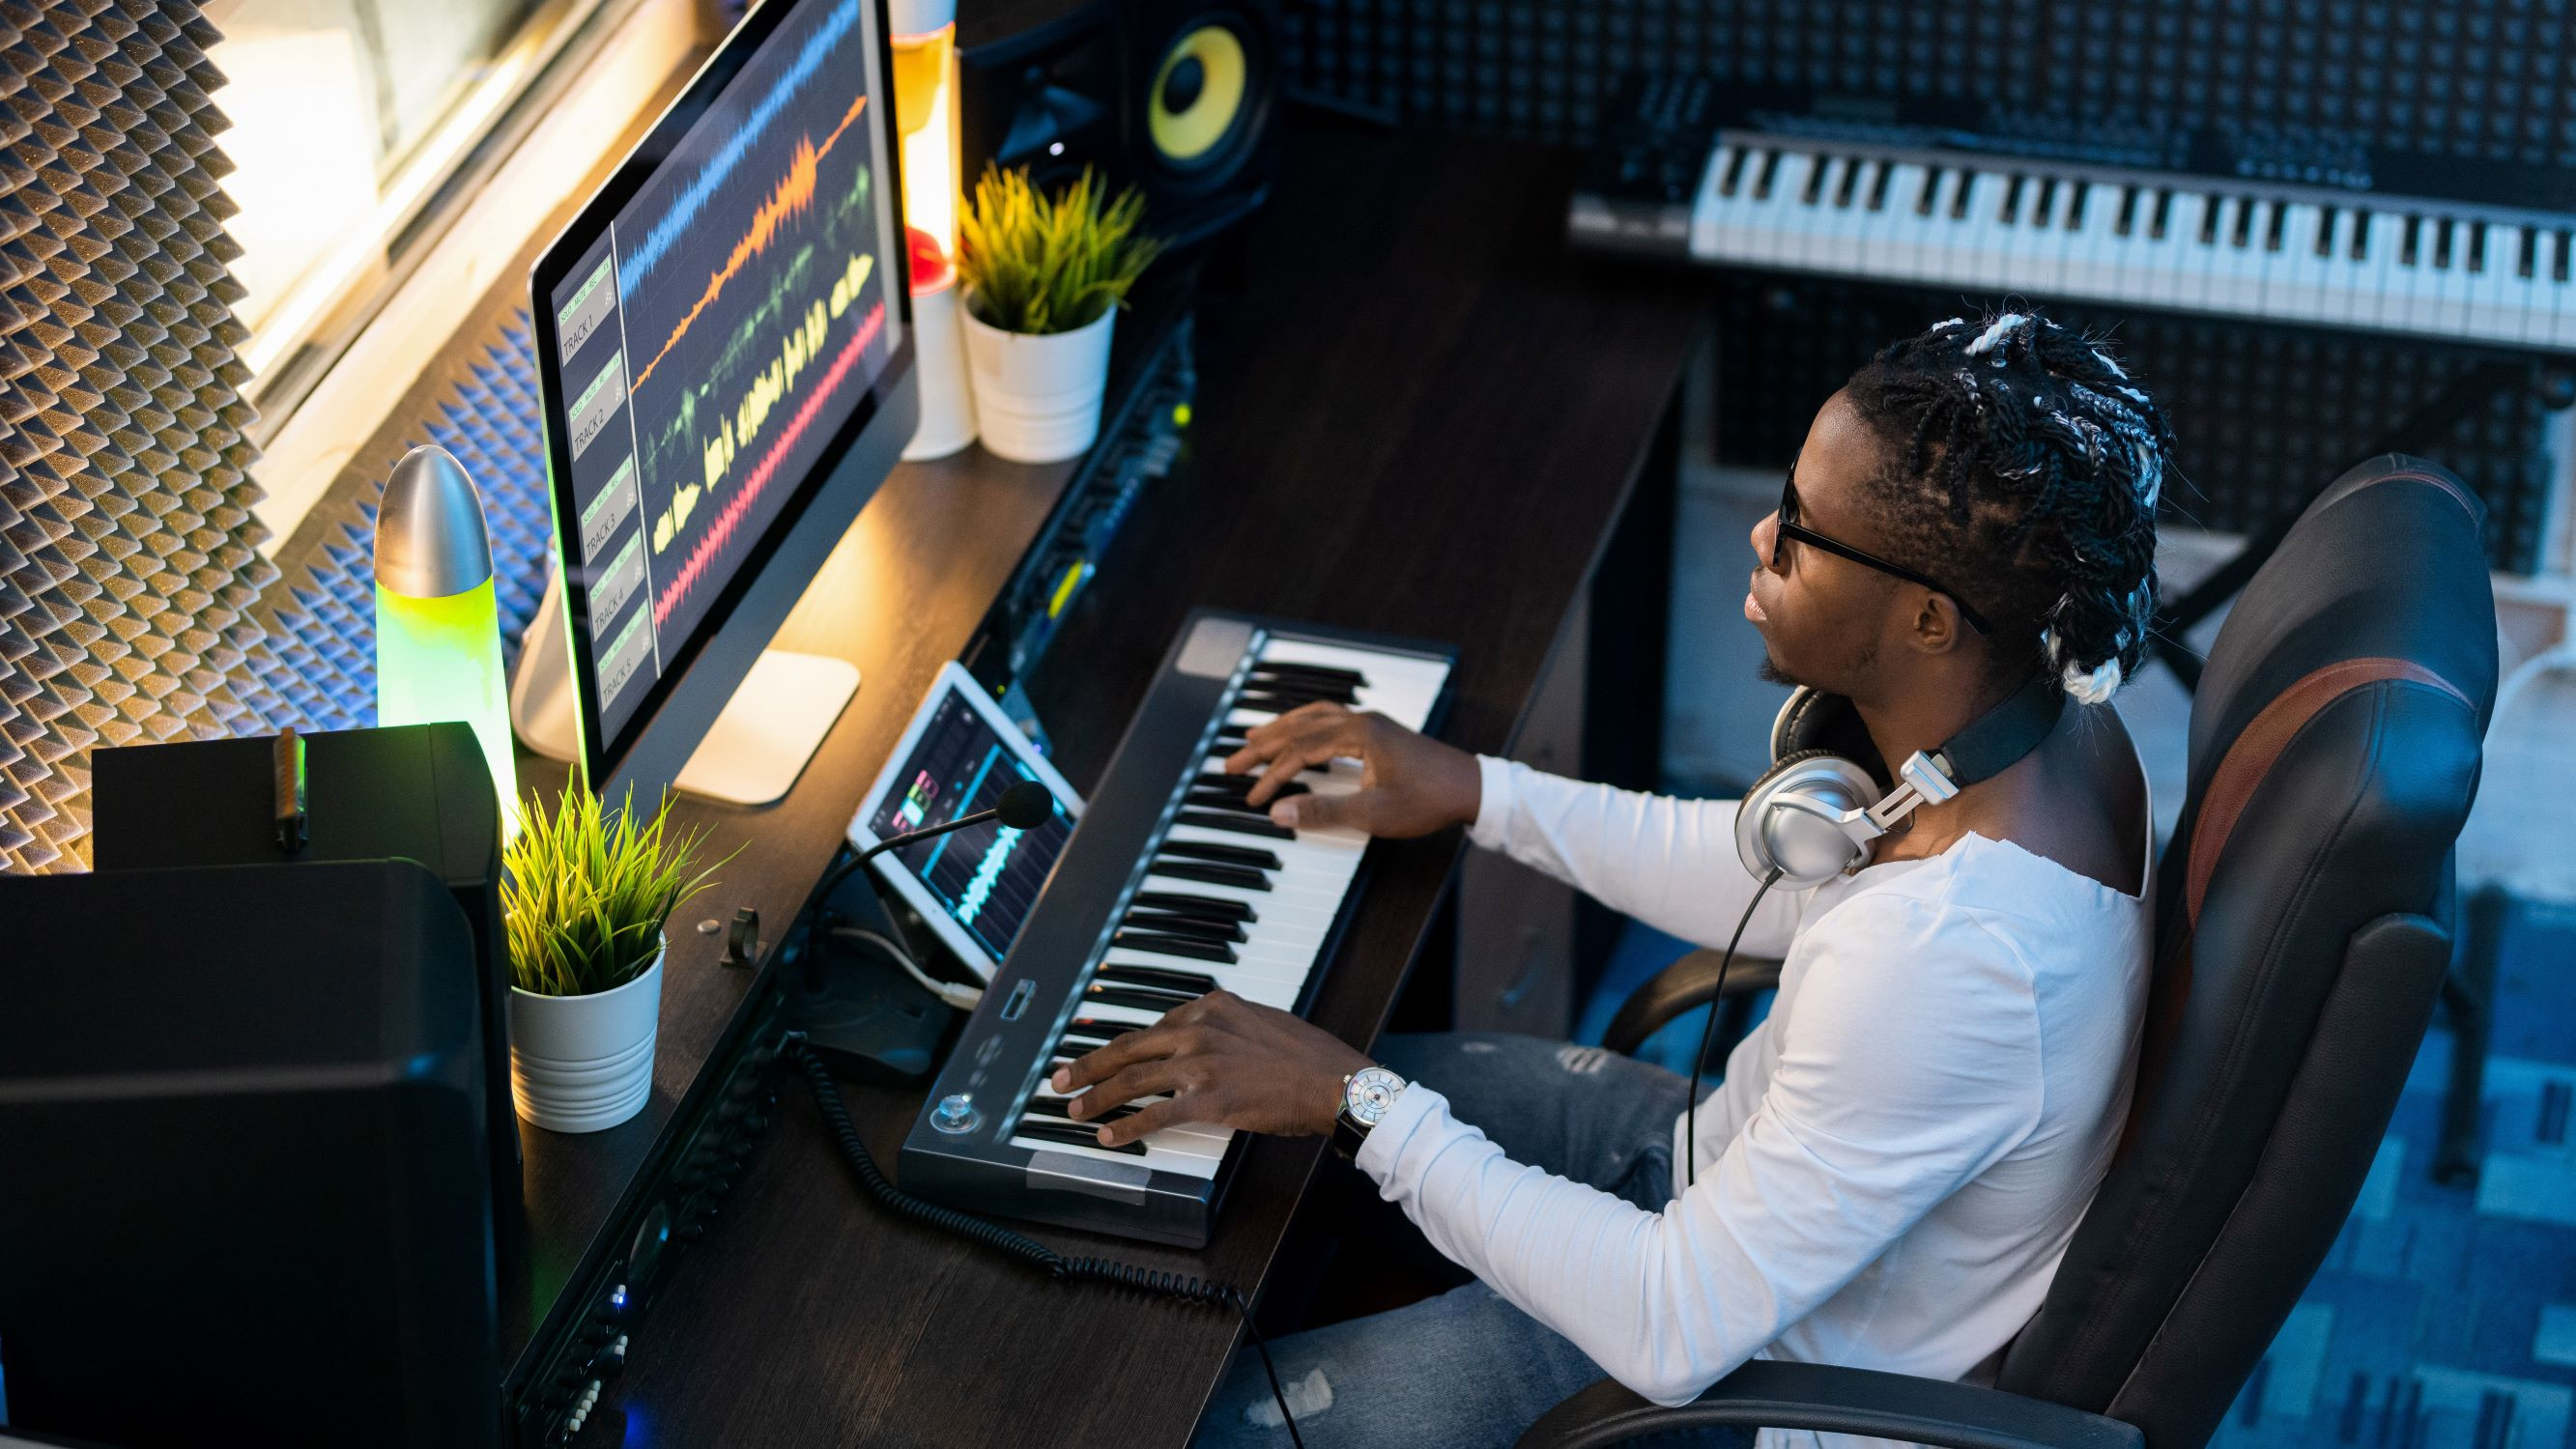 View Free Music Production Software For Chromebook Images